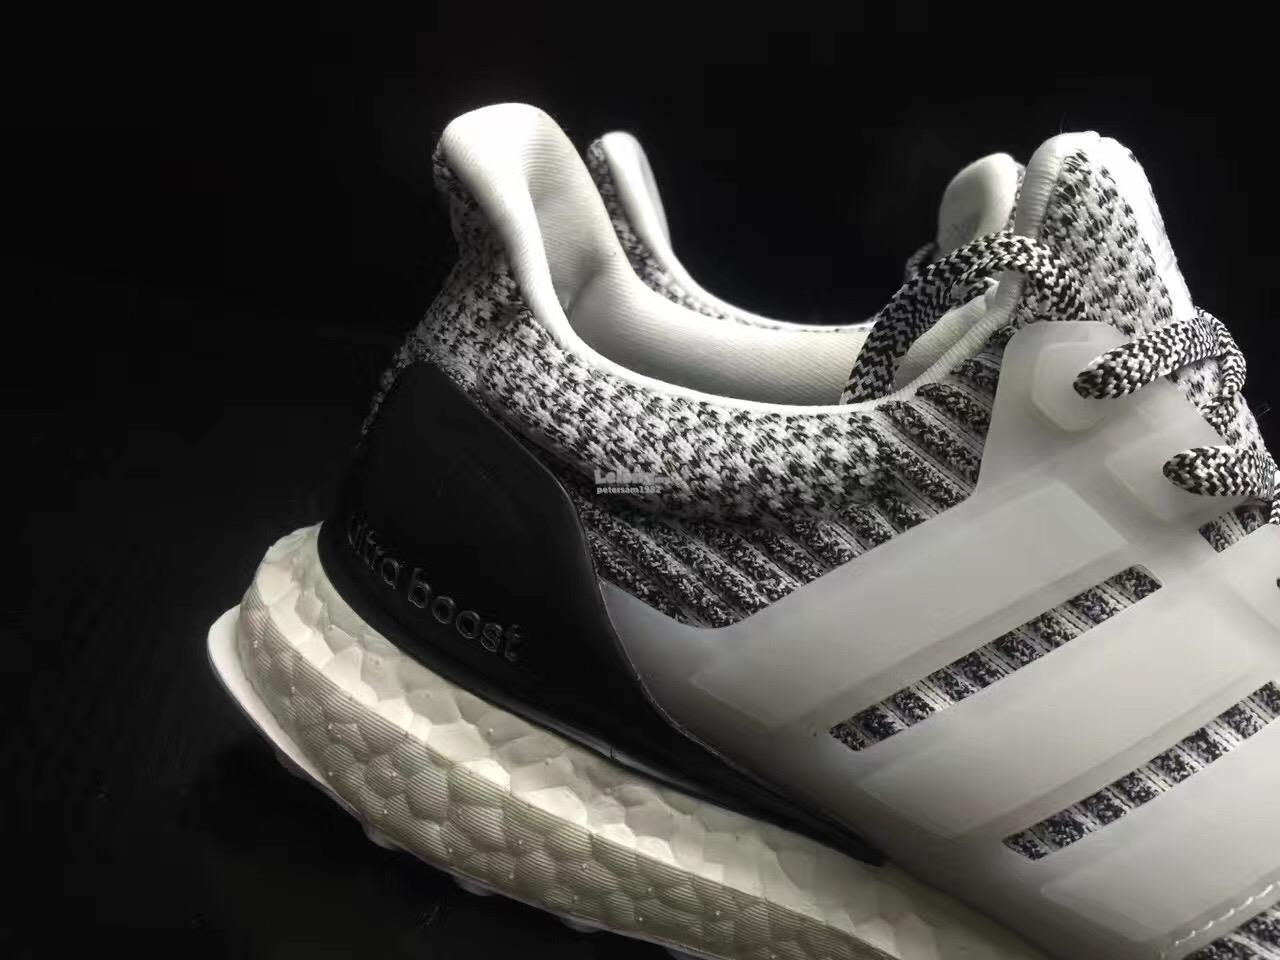 Adidas Ultra Boost M 3.0 Oreo Black and White Ultraboost S 80636